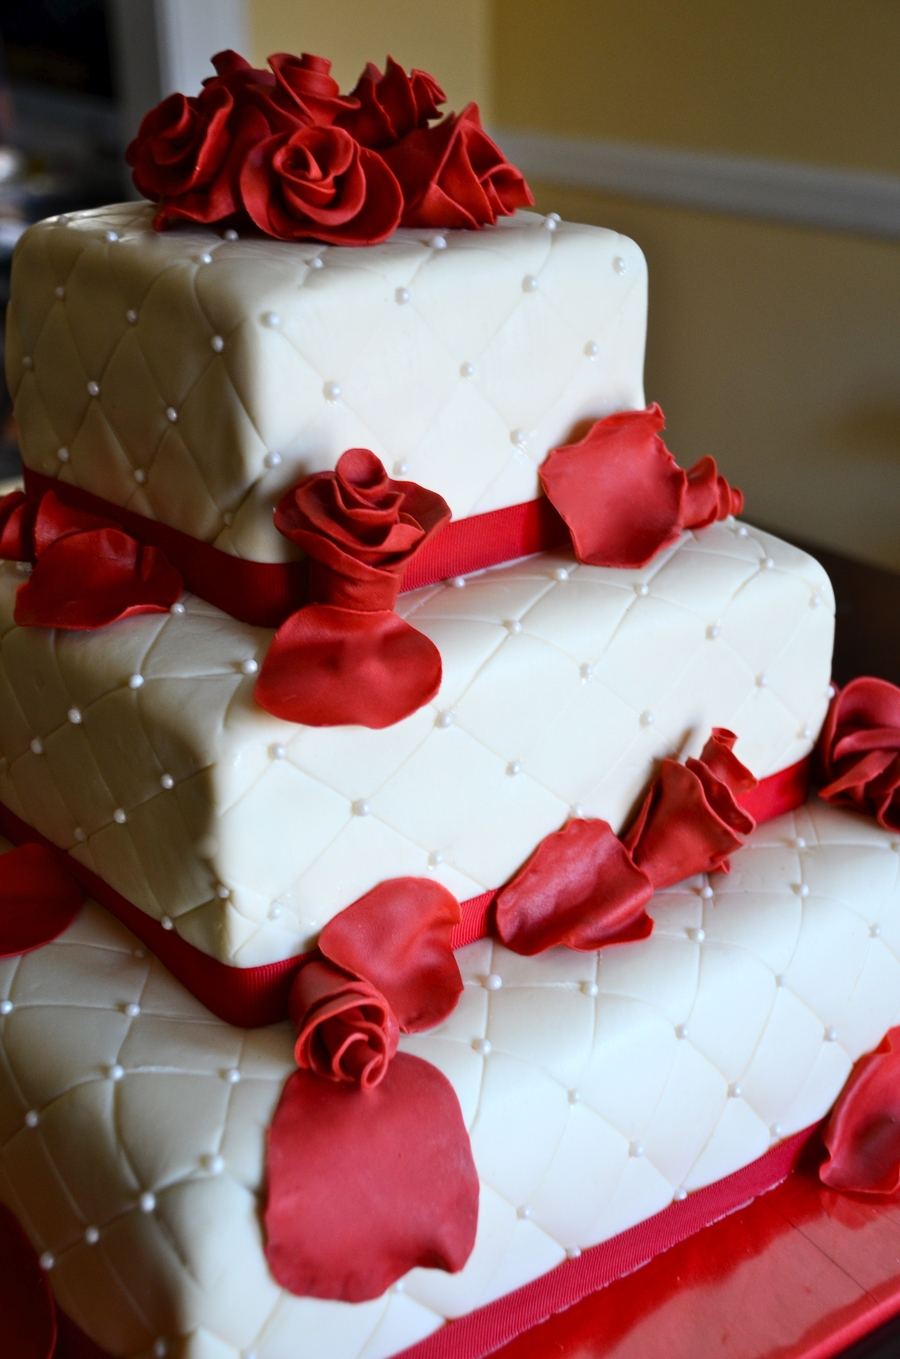 Red Rose Wedding Cake - CakeCentral.com